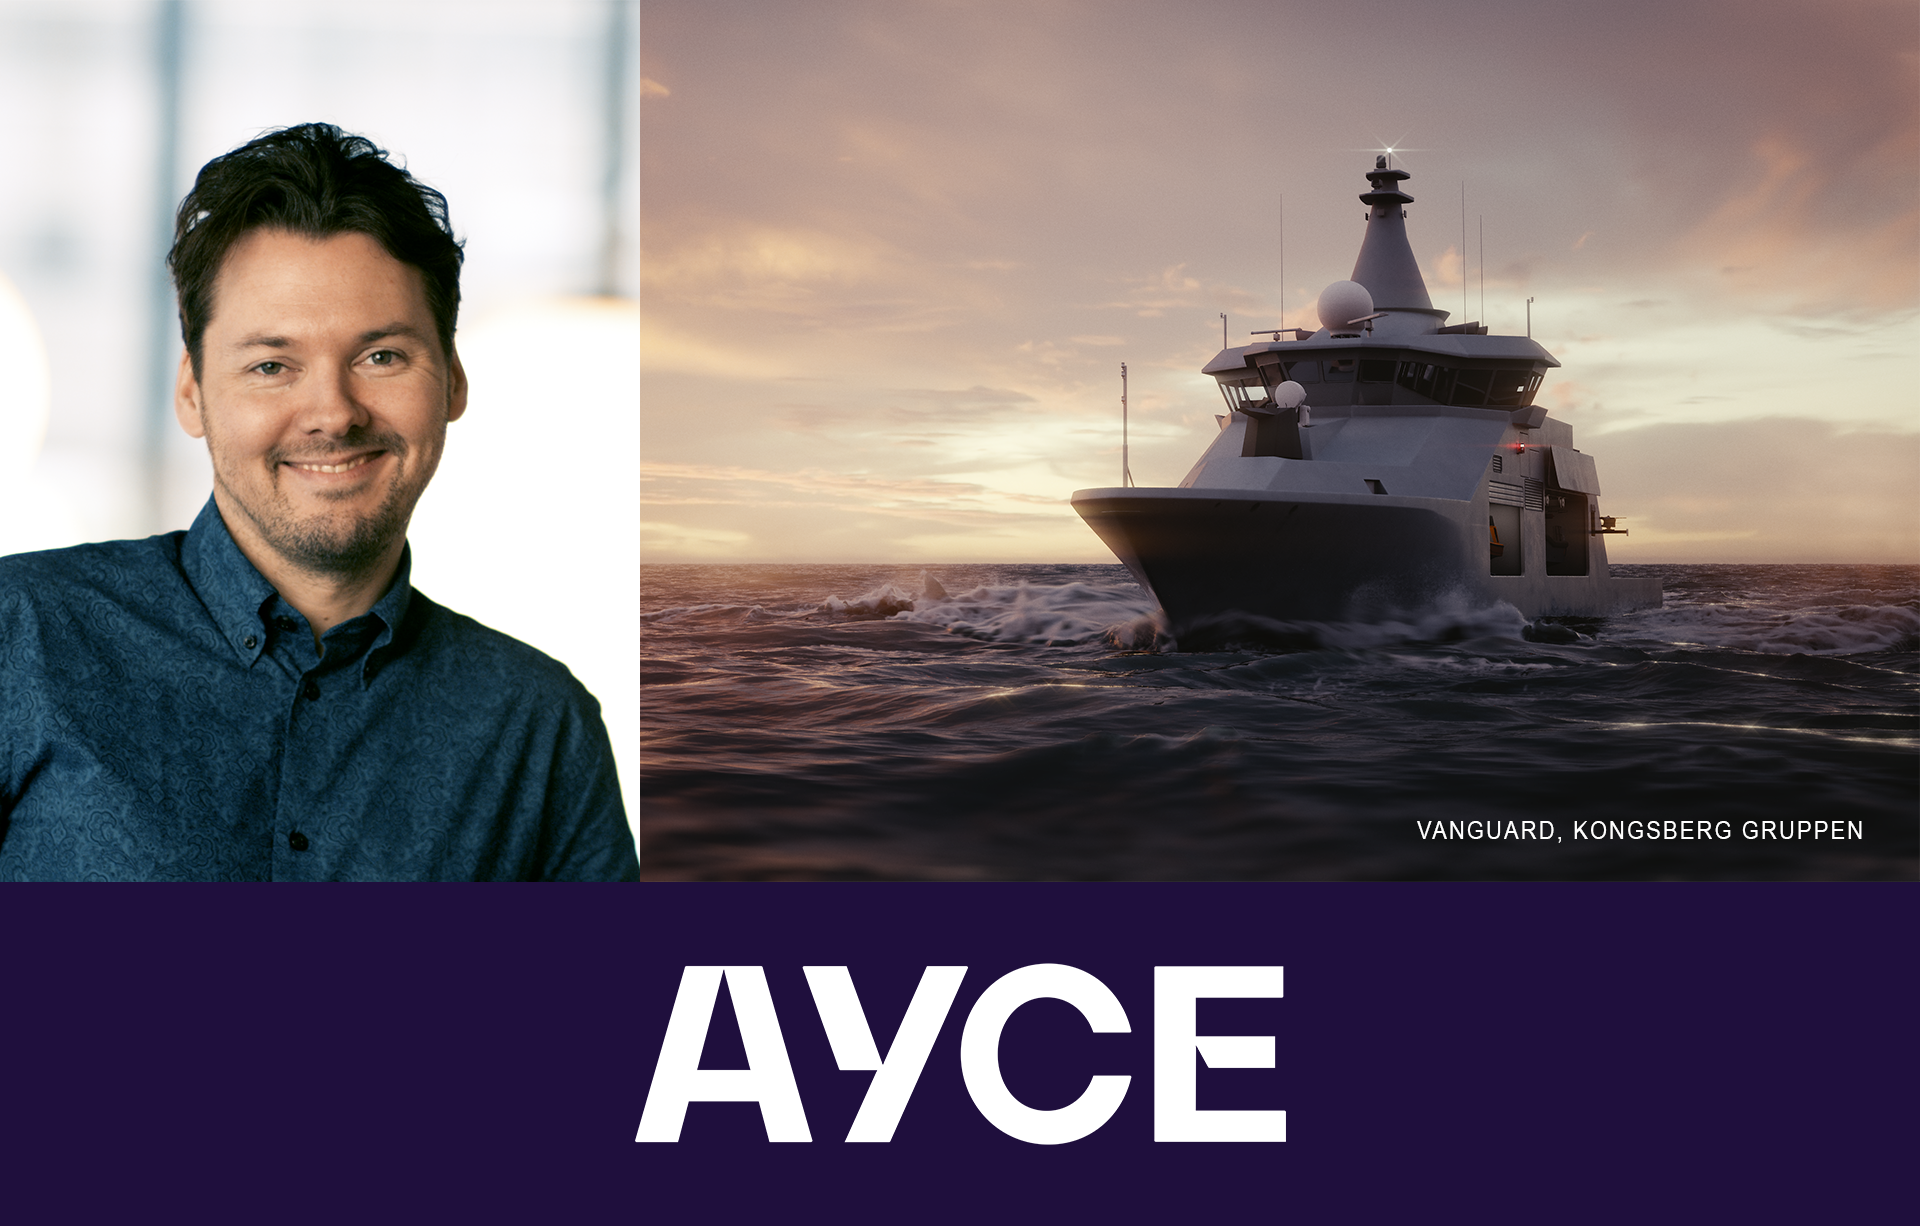 Martin Skarbø  founder of Ayce use expertise from The Cloud People to create animations of Kongsberg Vanguard